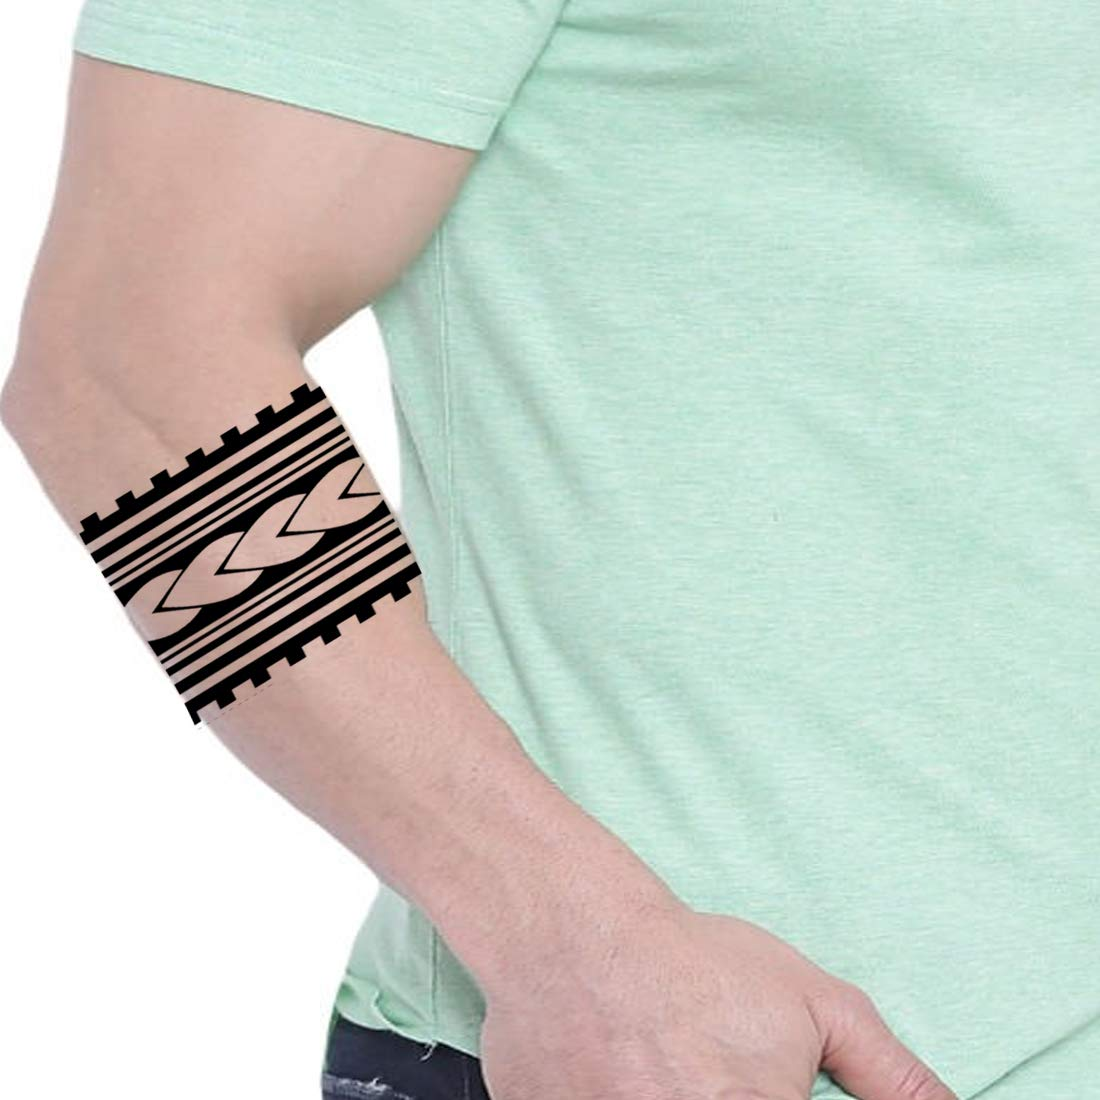 Voorkoms Mom Dad Hand Band Waterproof Body Temporary 2 Design Tribal Tattoo Combo Amazon In Beauty